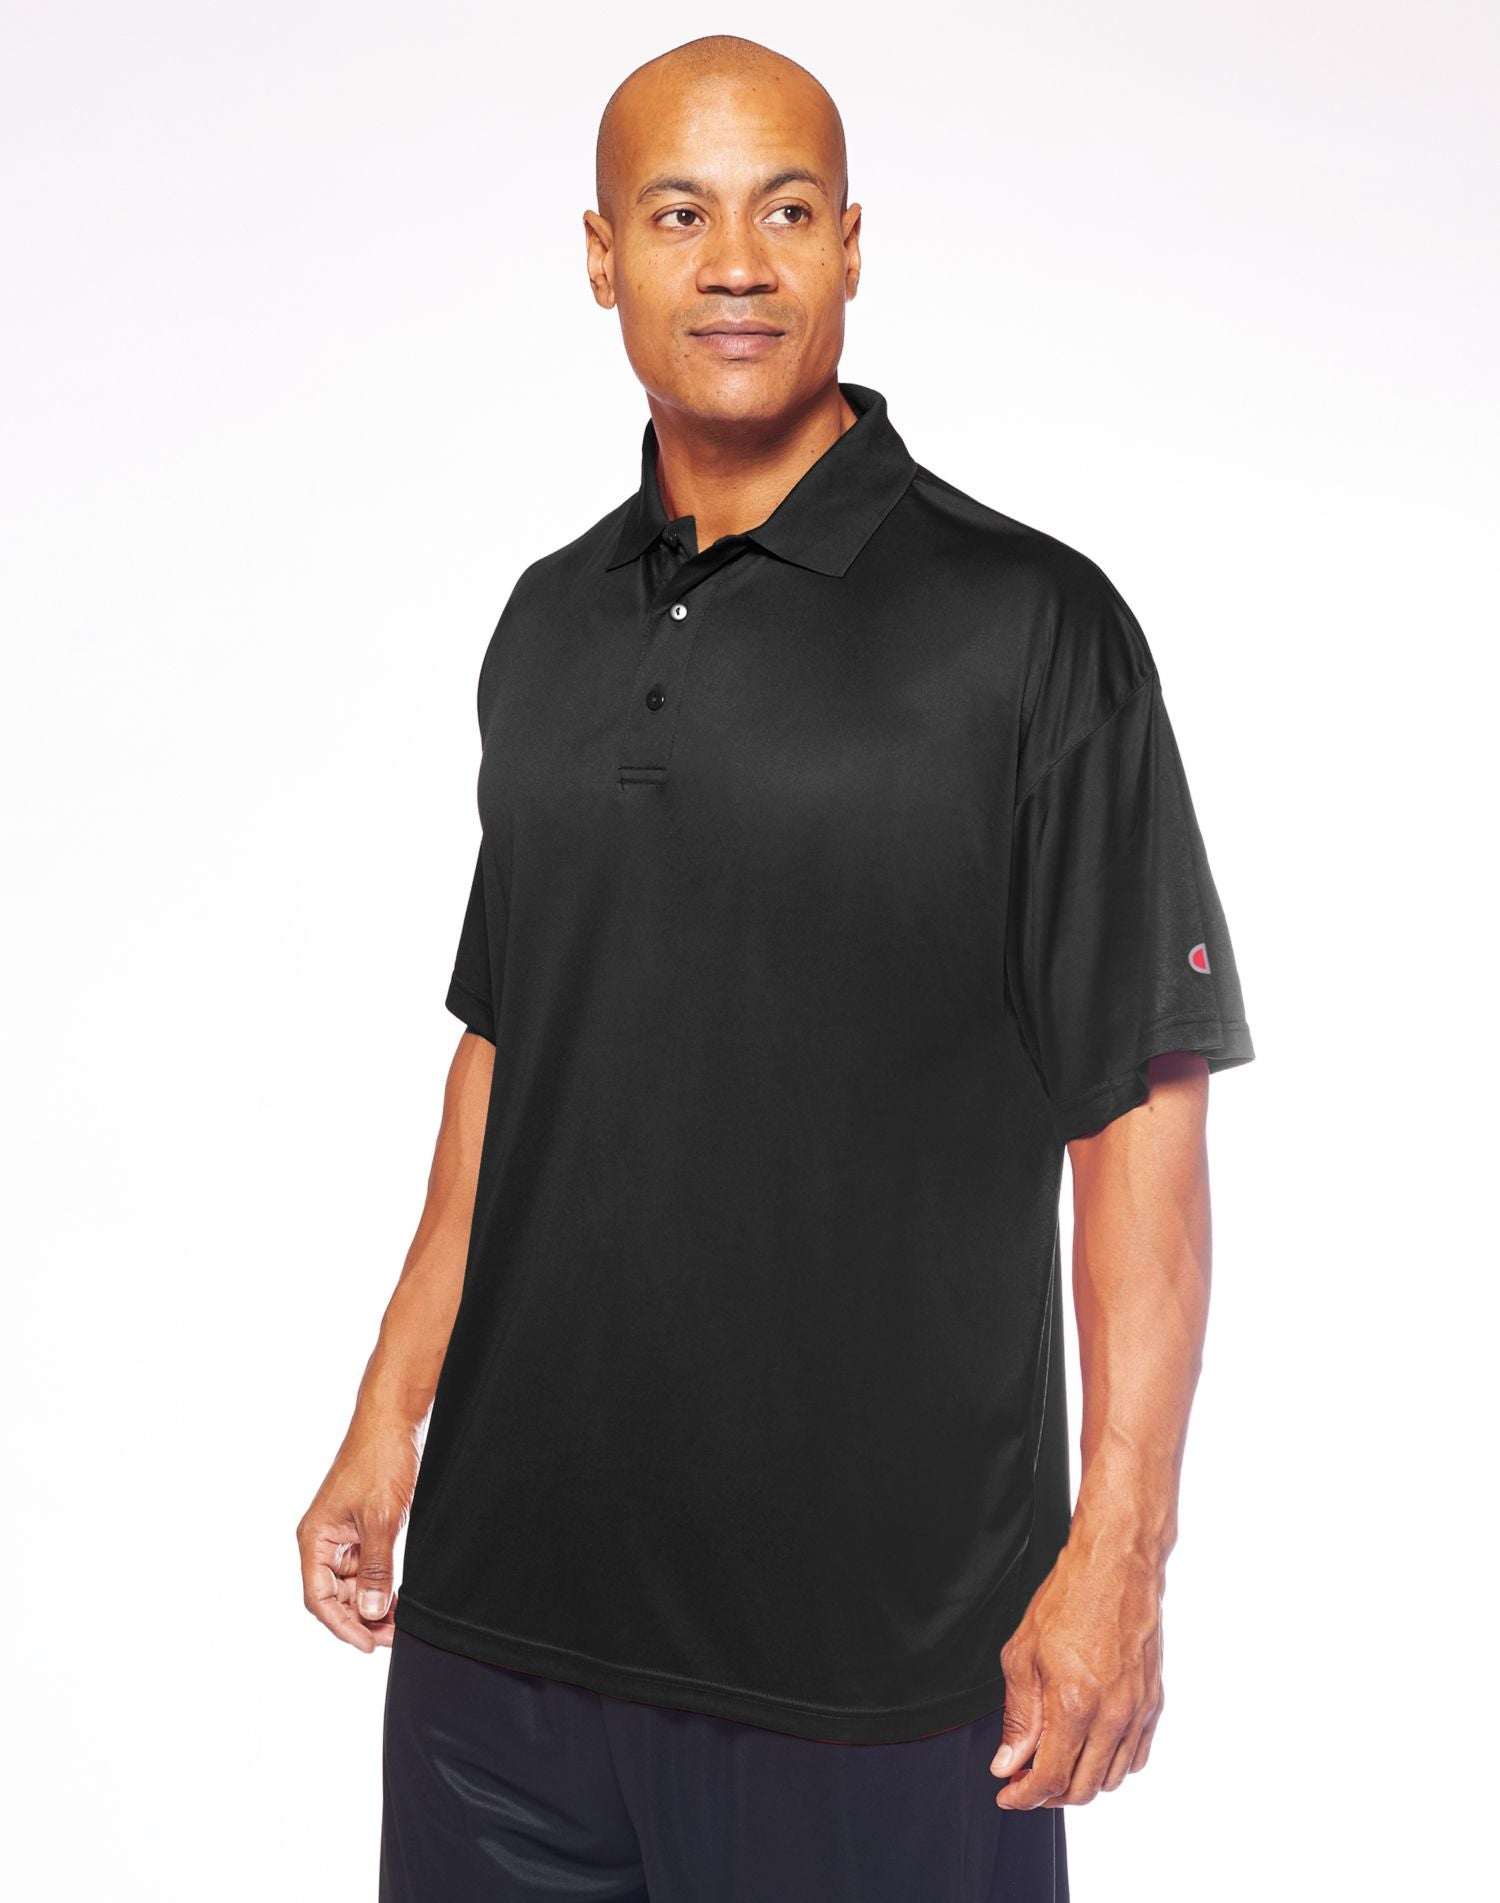 792ae55e6 CH407 - Champion Mens Vapor Big & Tall Short-Sleeve Polo – NY Lingerie